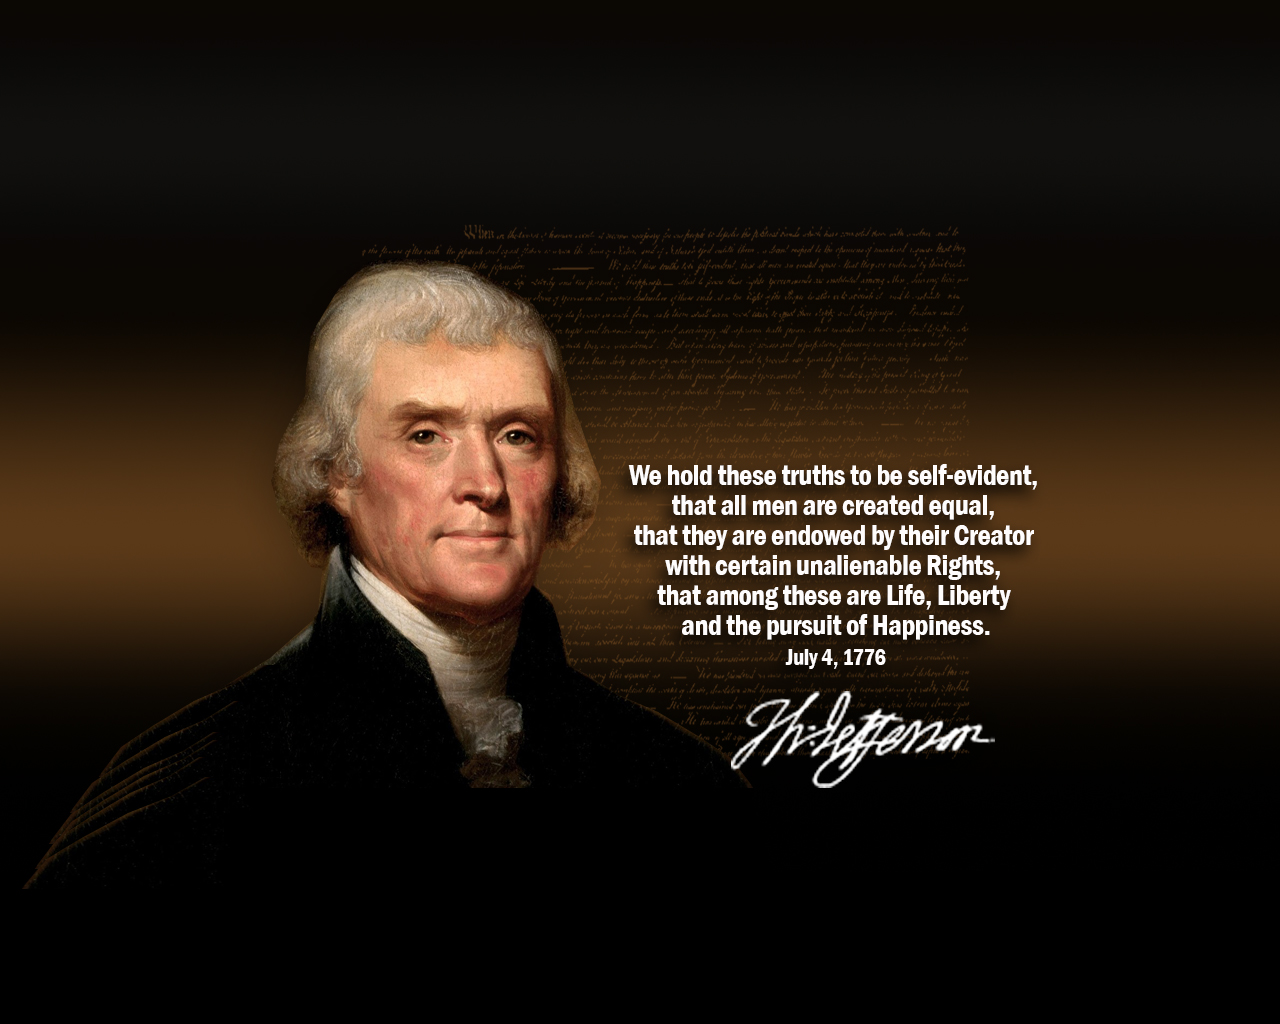 Thomas Jefferson Declaration Quotes Quotesgram: thomas jefferson quotes